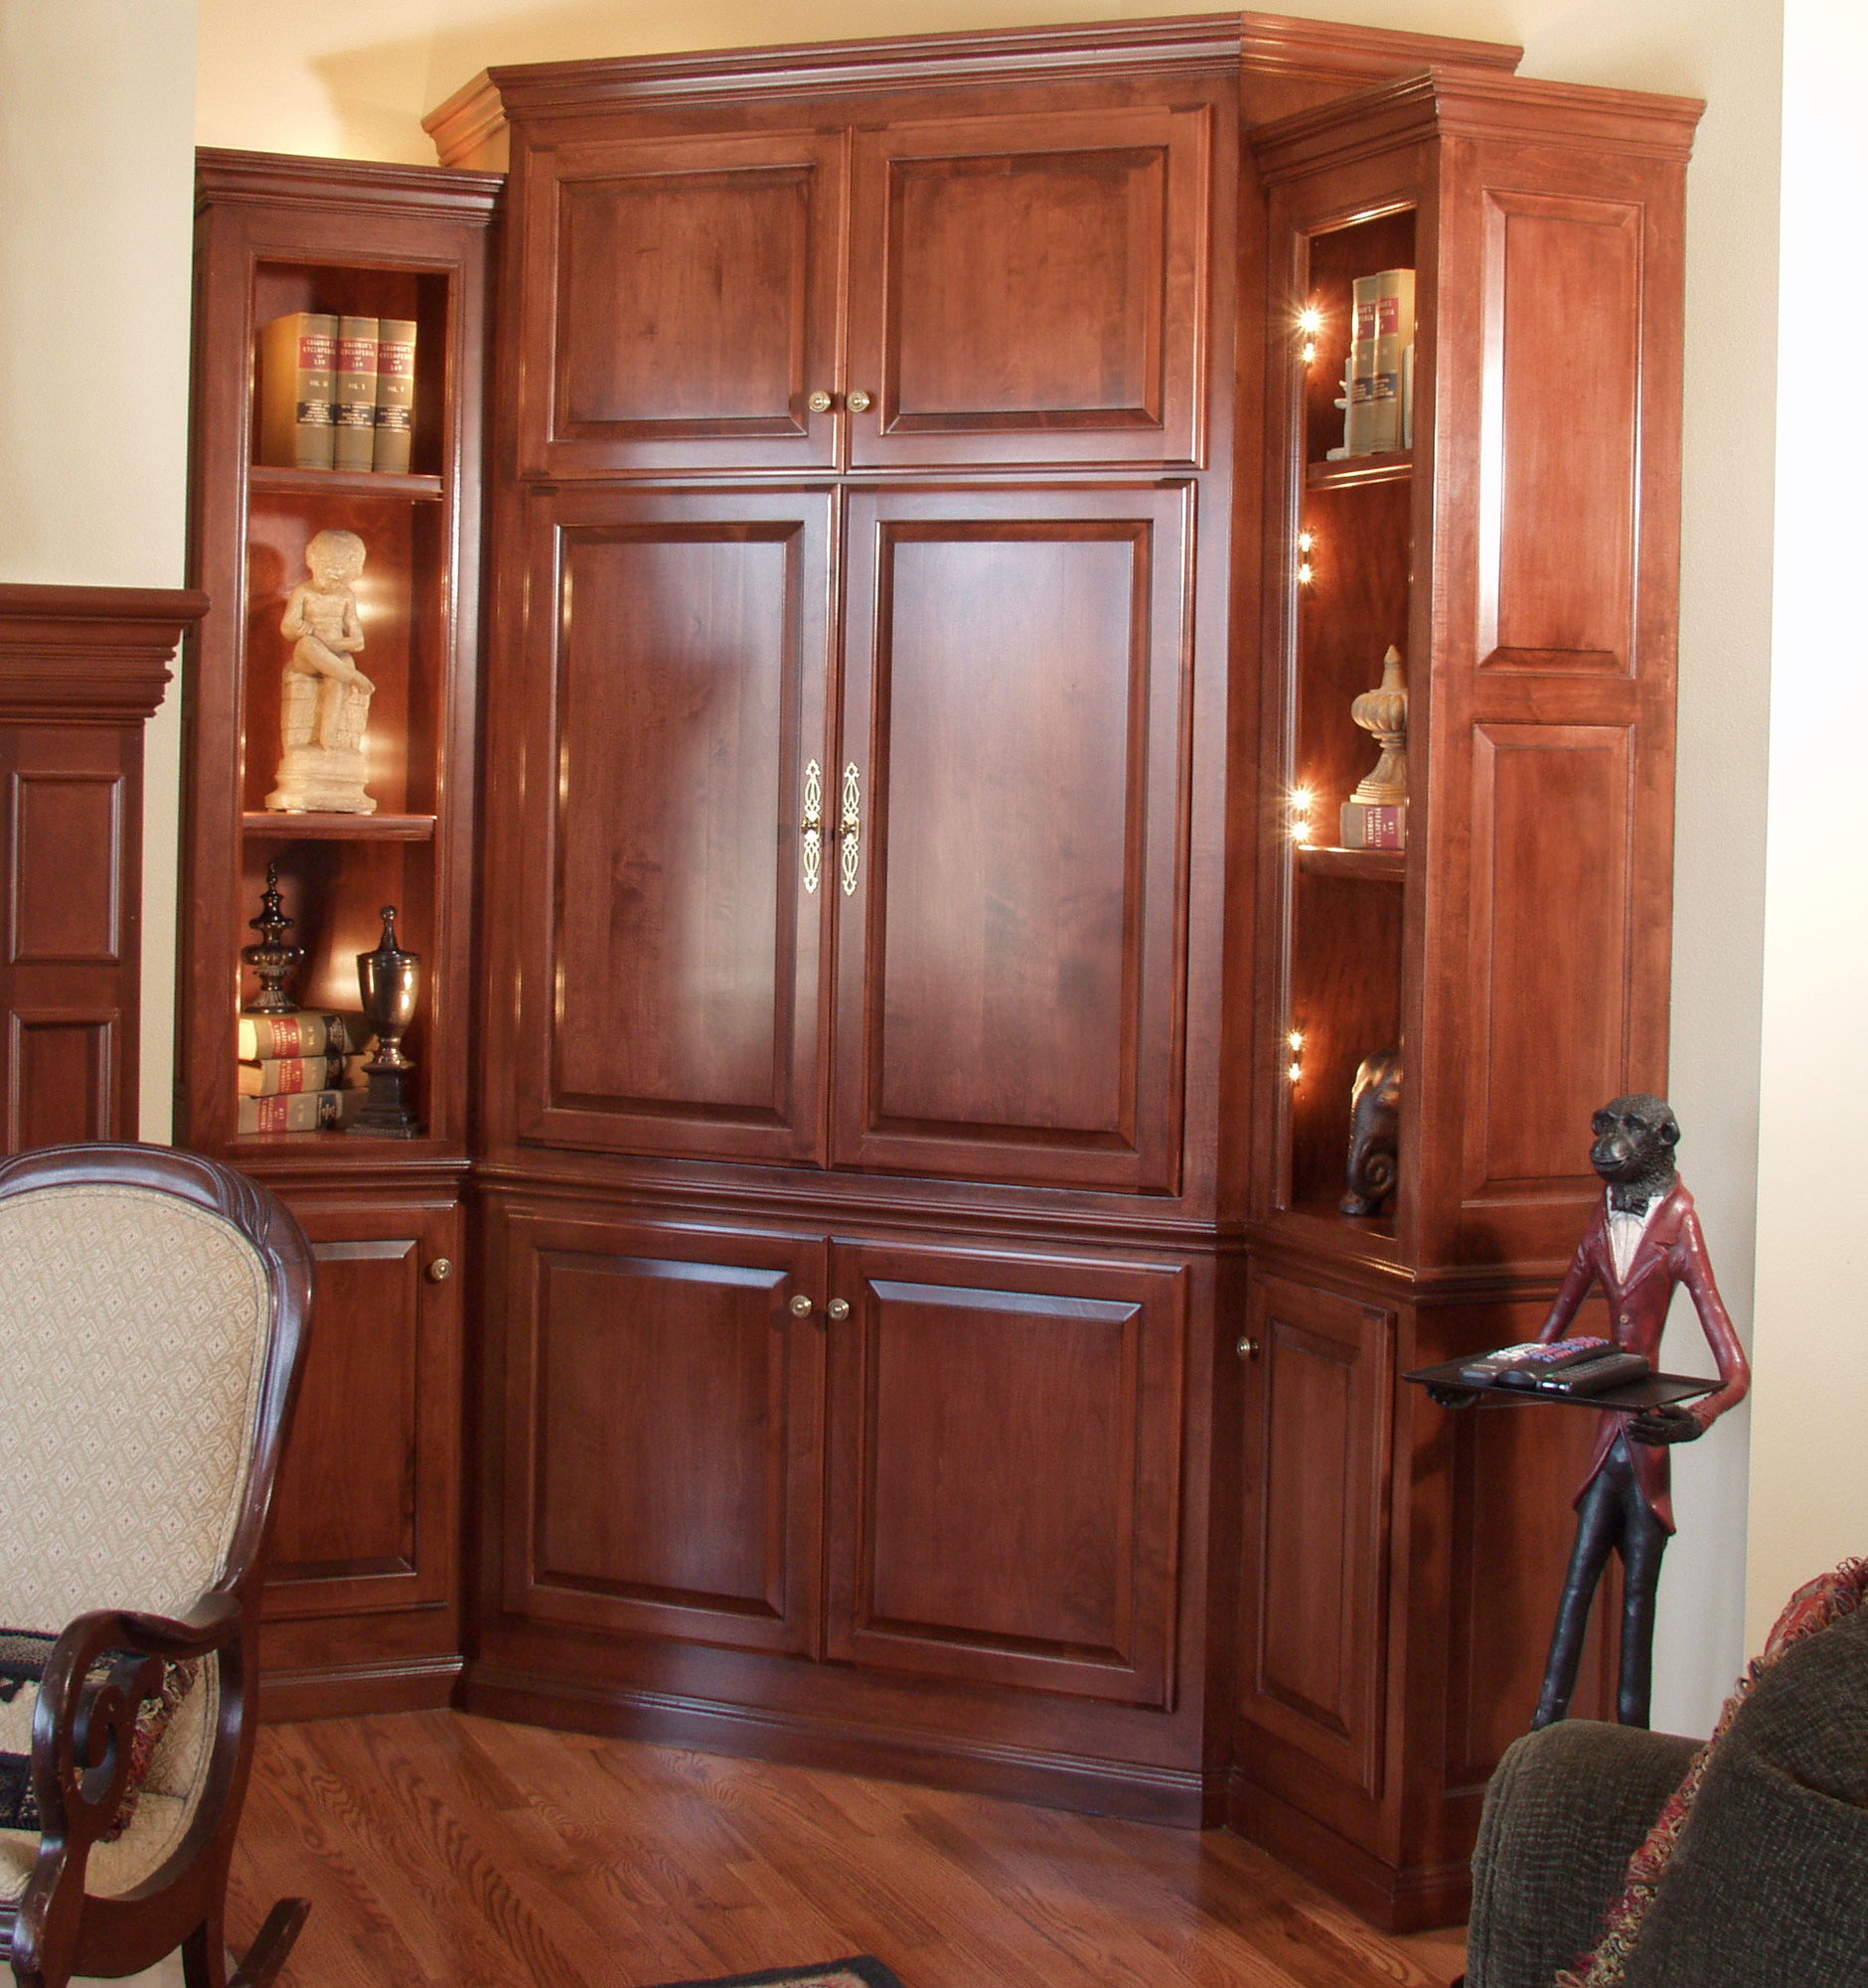 Corner media center cabinets shown with C101 - OE8, IE1, RP6 cabinet doors